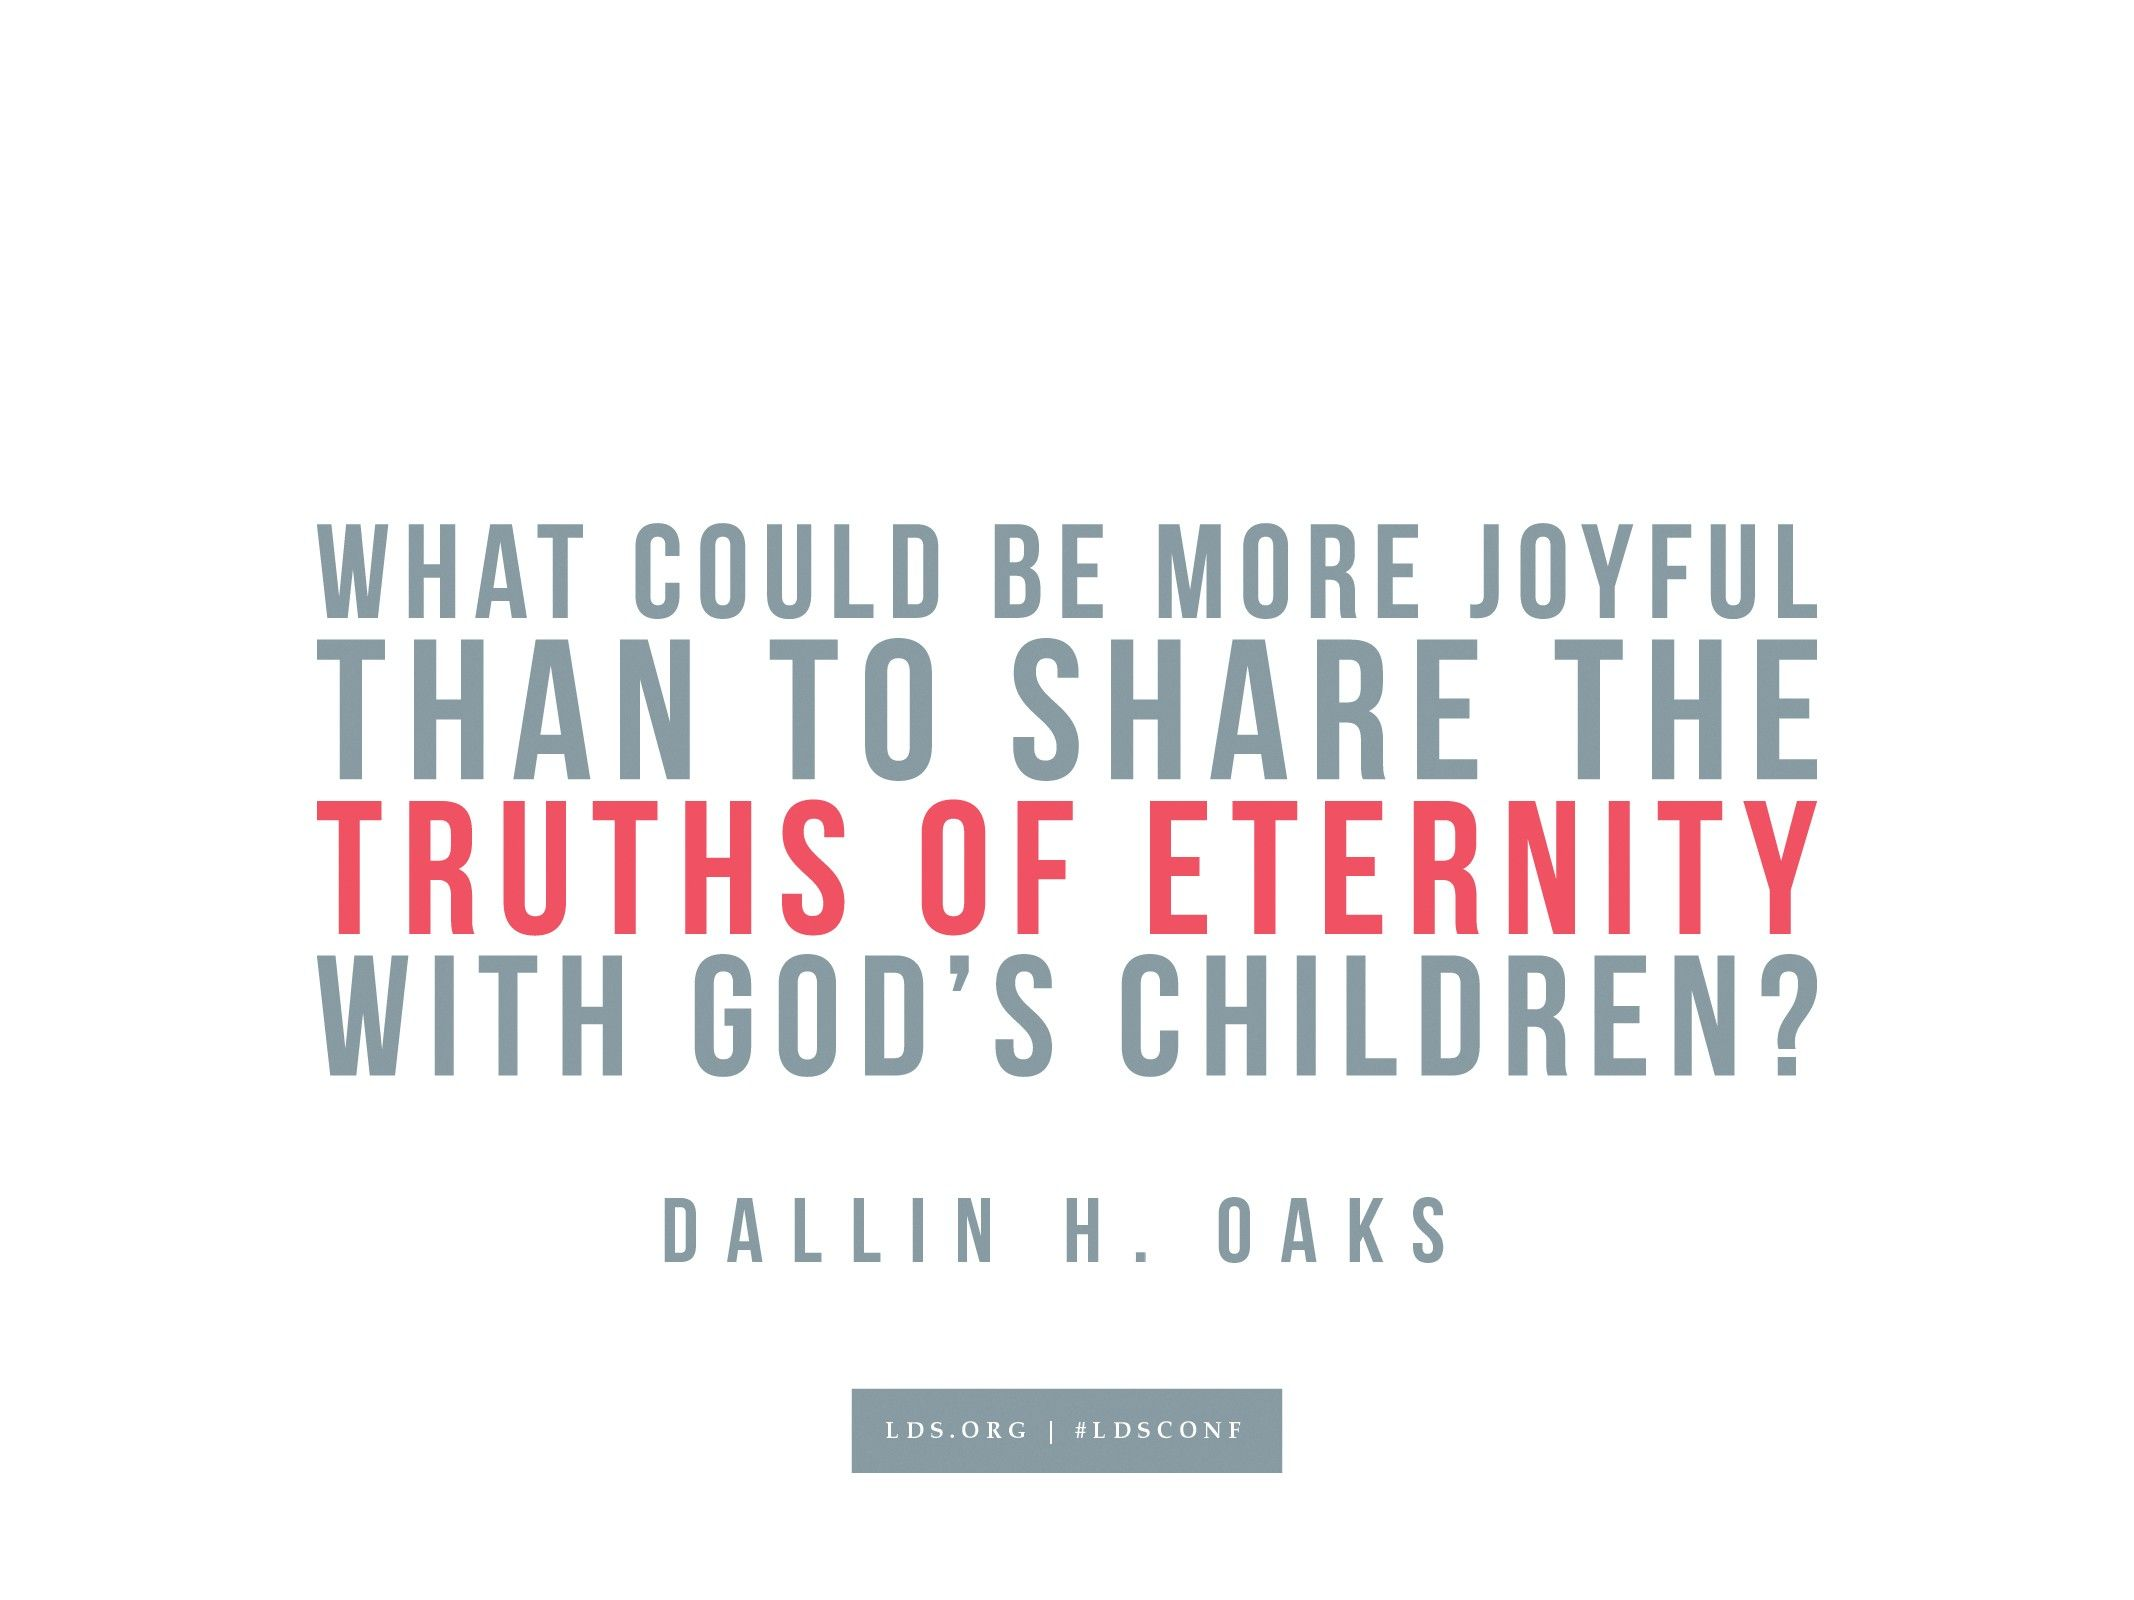 """""""What could be more joyful than sharing the truths of eternity with God's children?""""—Dallin H. Oaks, """"Sharing the Restored Gospel"""""""